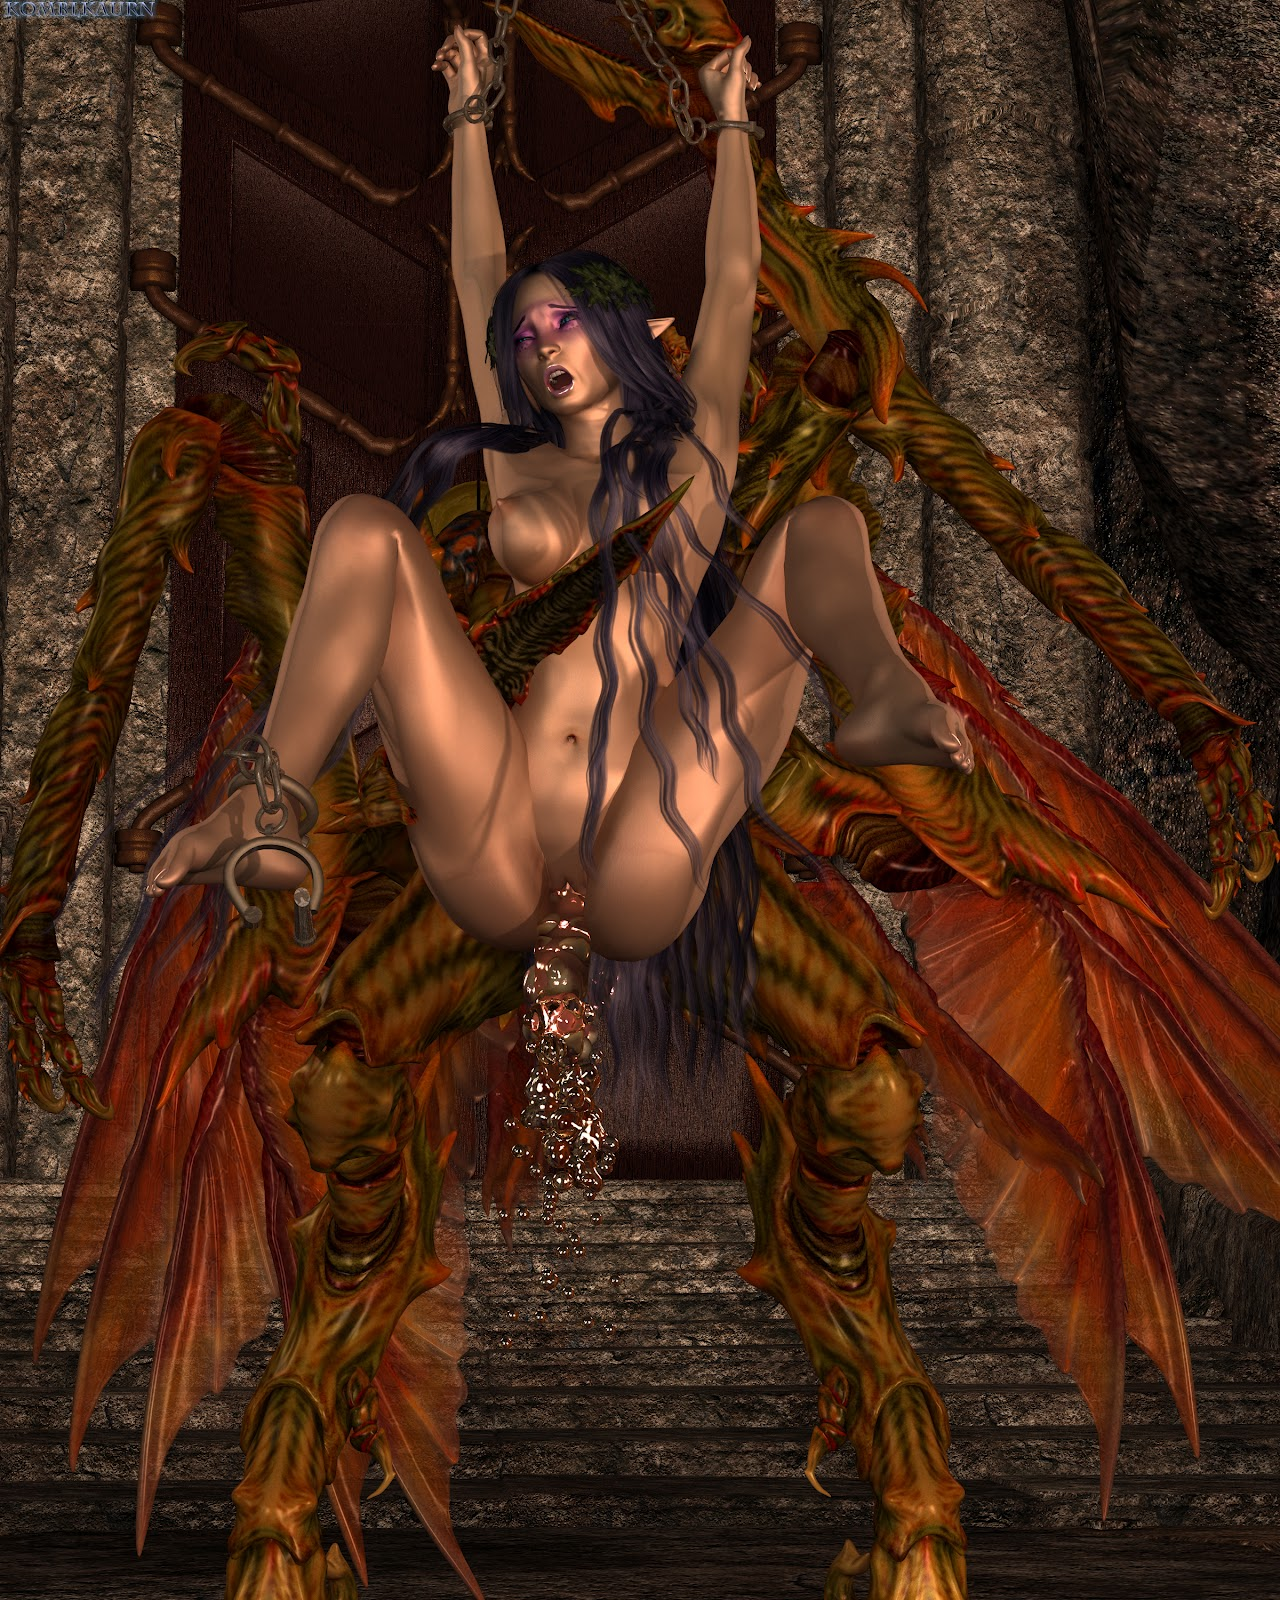 Kinky female demon pictures & images pornos toons